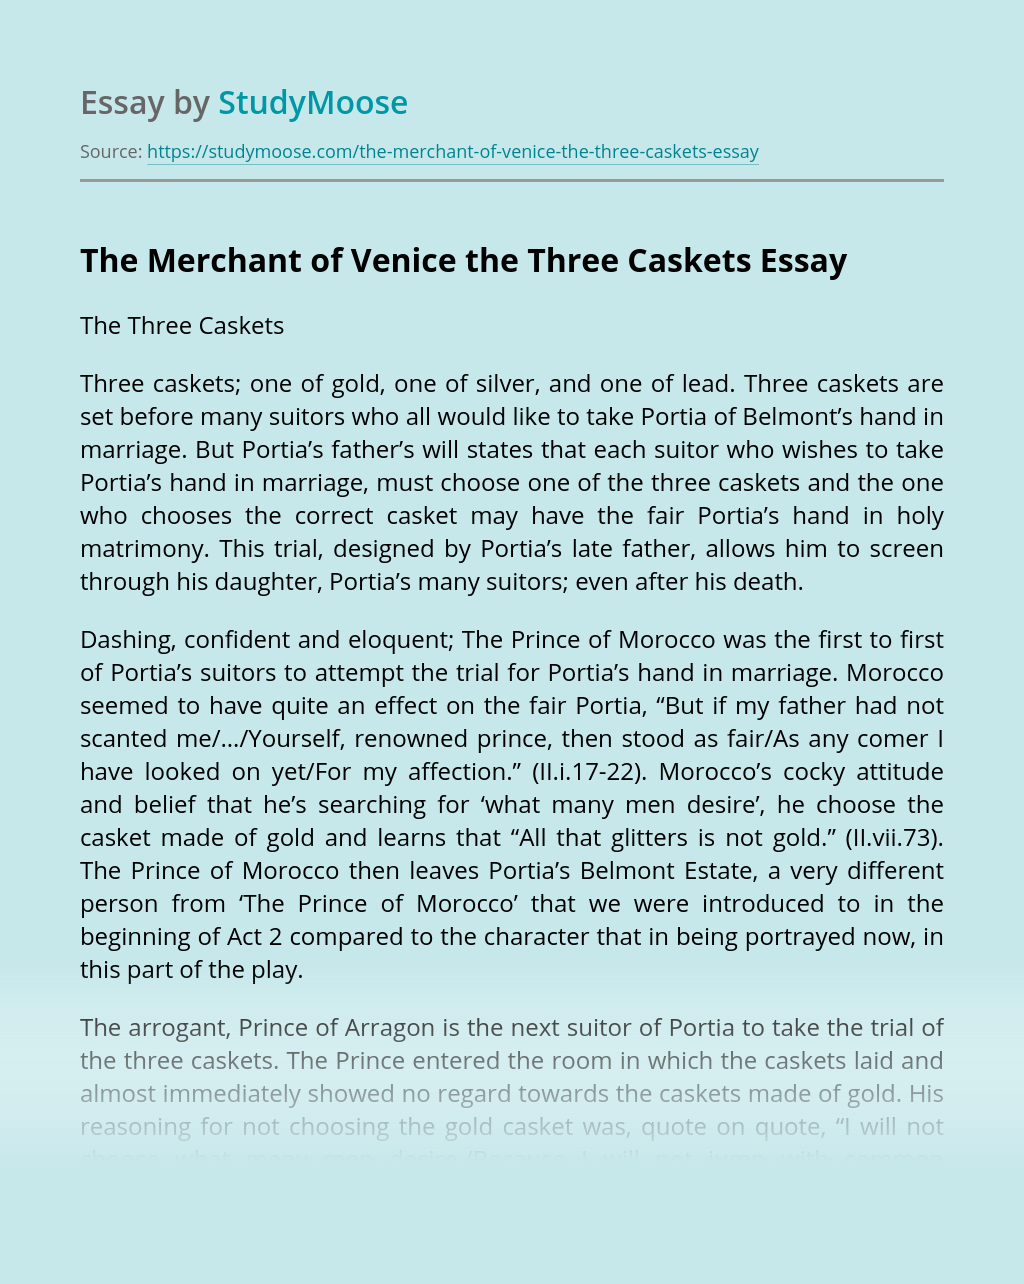 The Merchant of Venice the Three Caskets